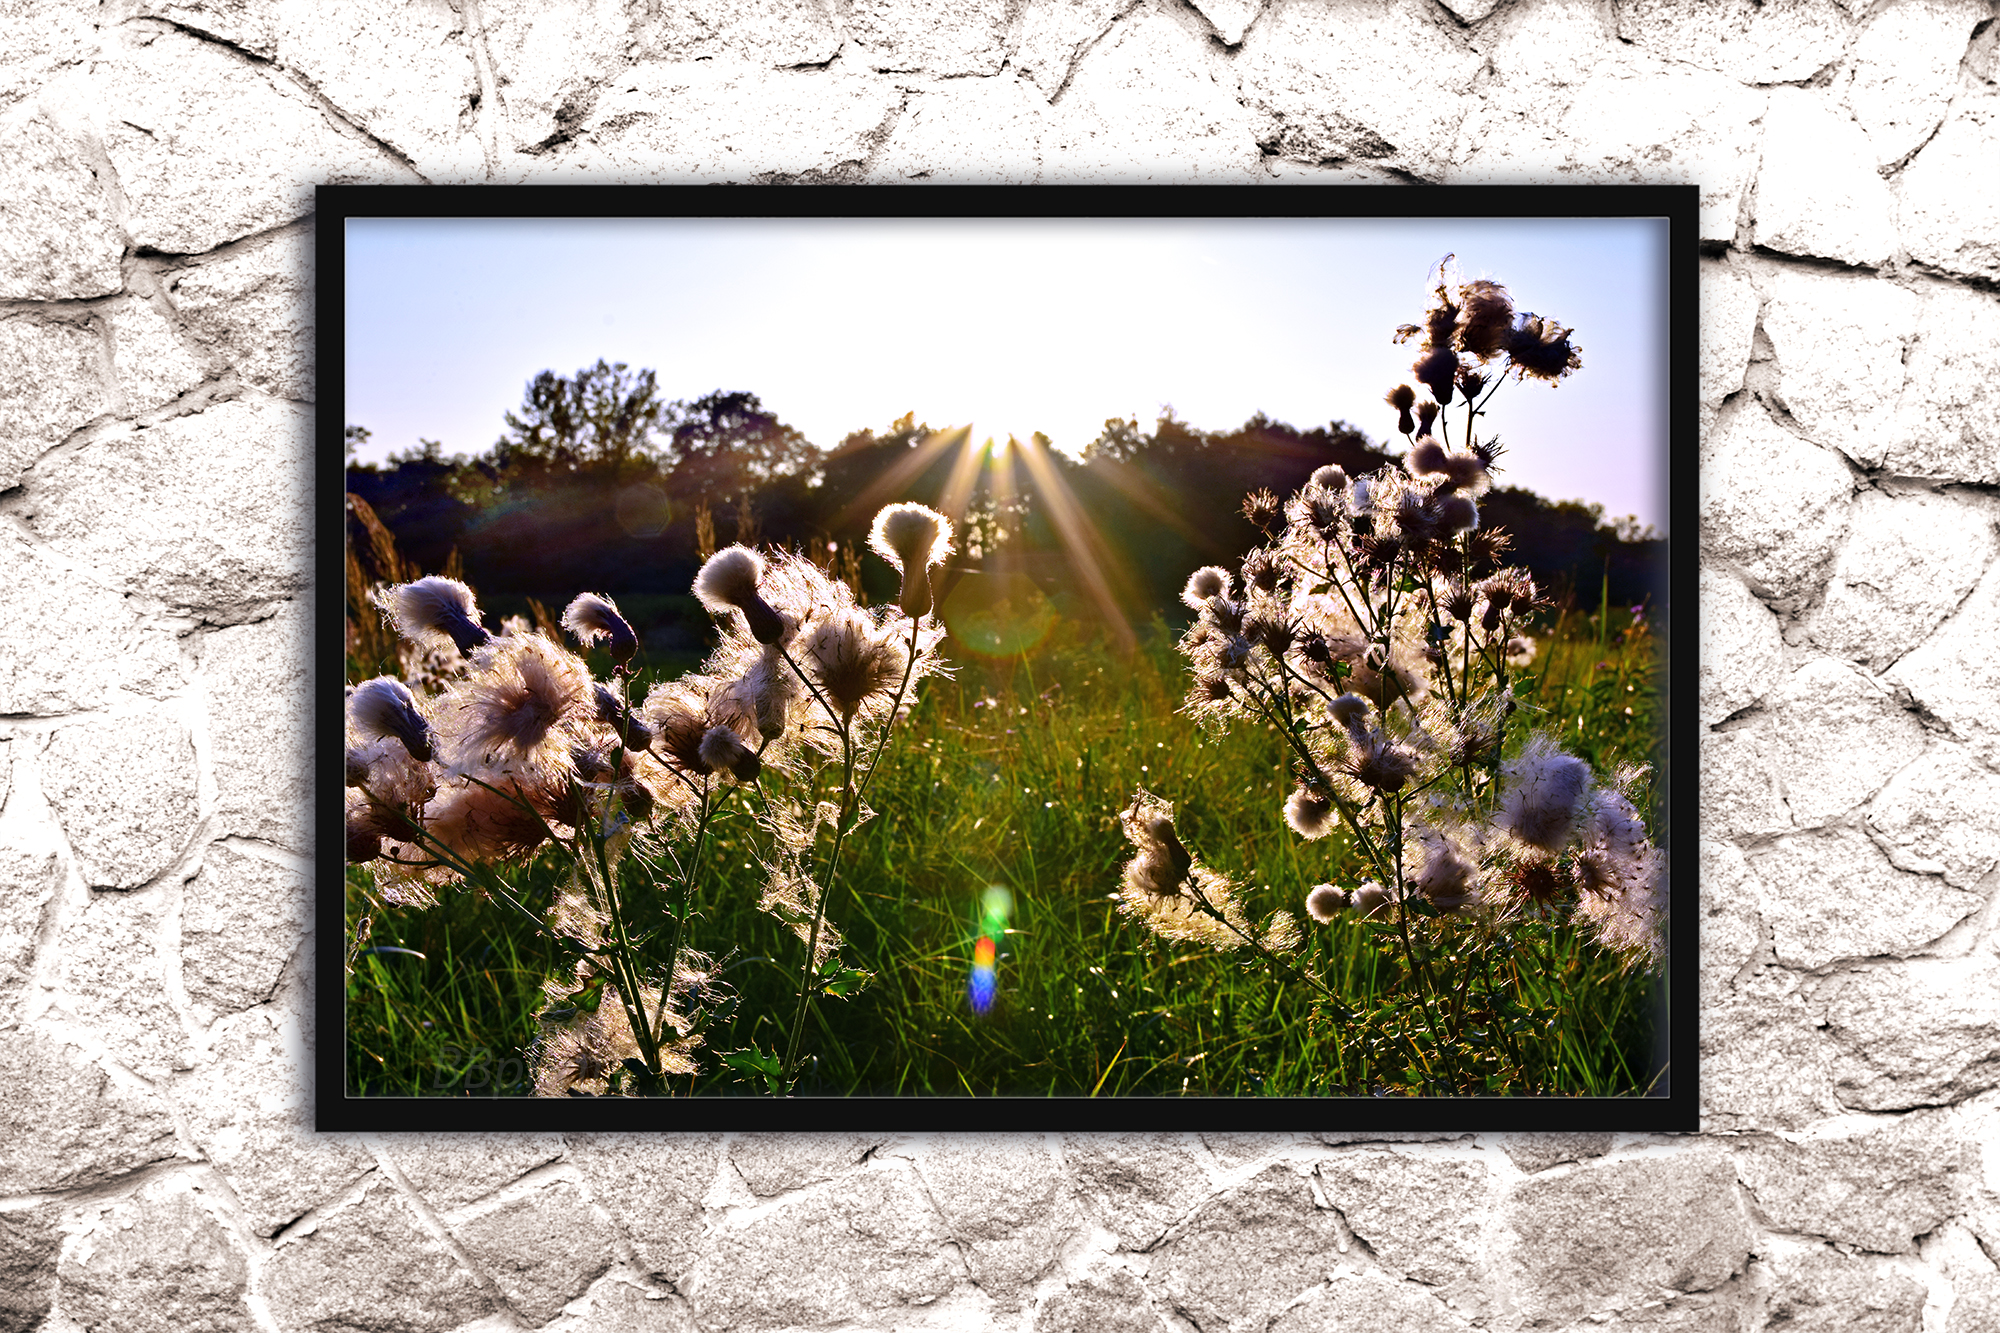 Nature photo, landscape photo, floral photo, fluffy grass example image 2